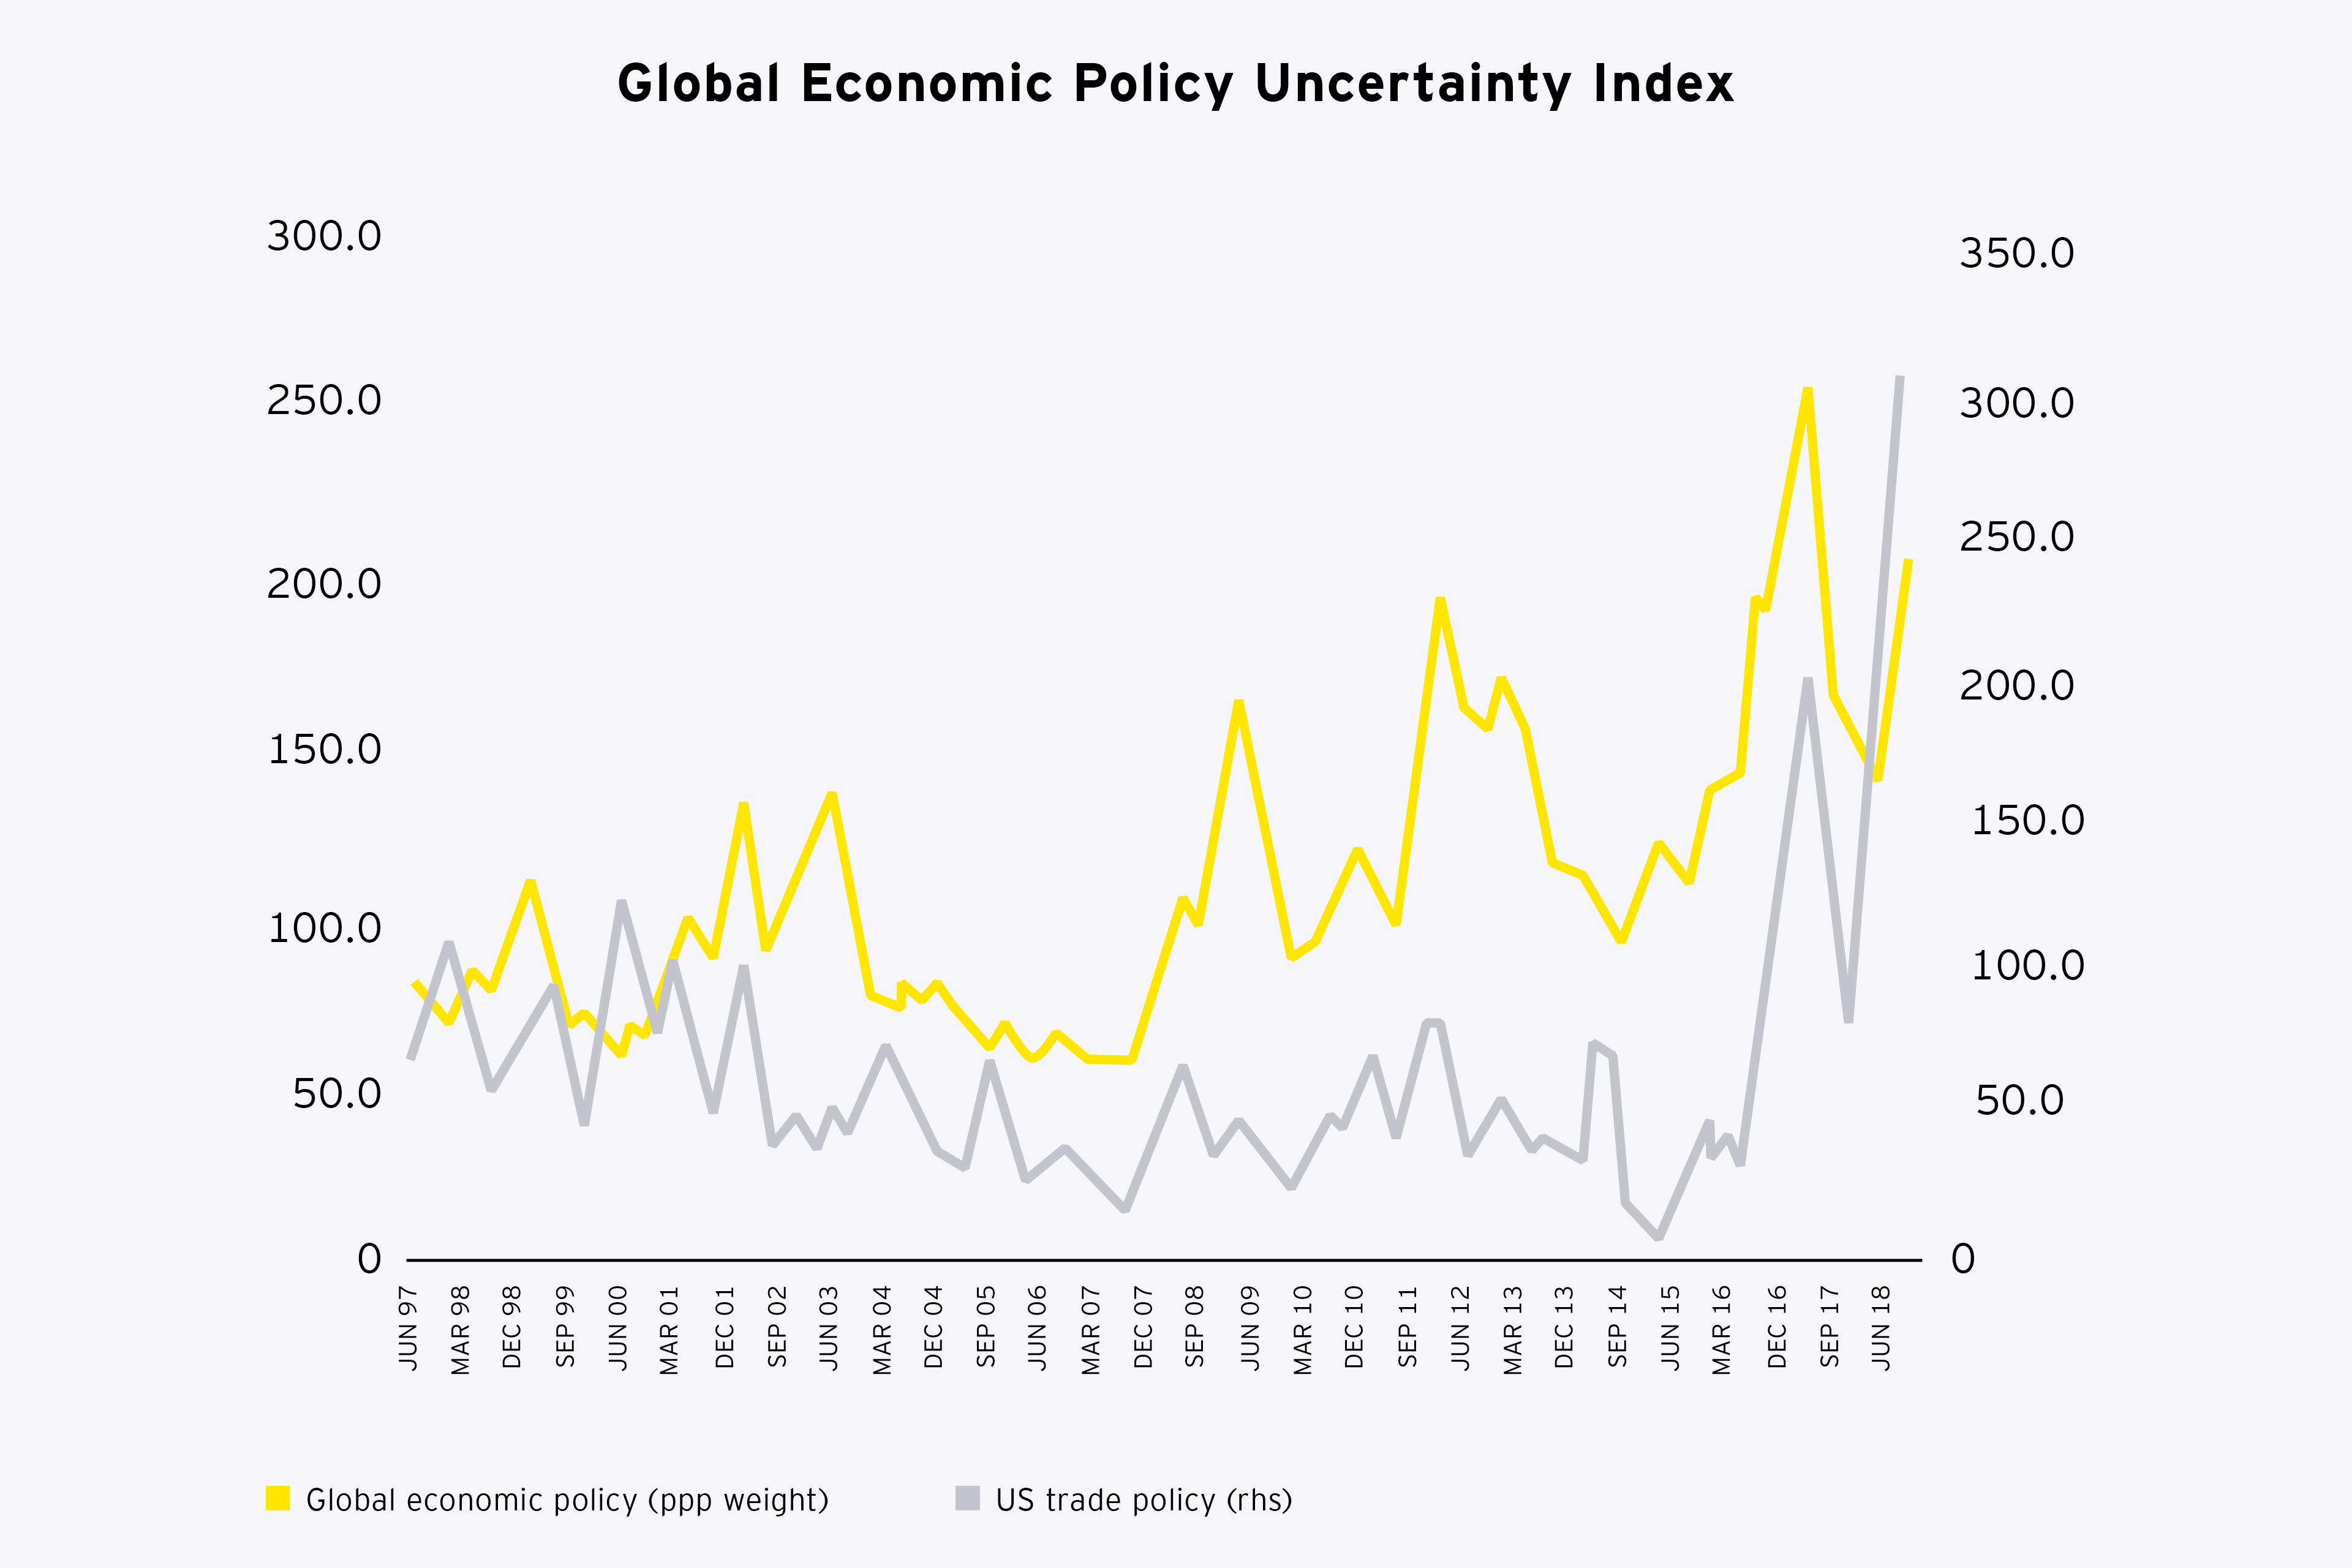 Graphic: Global economic policy uncertainty index